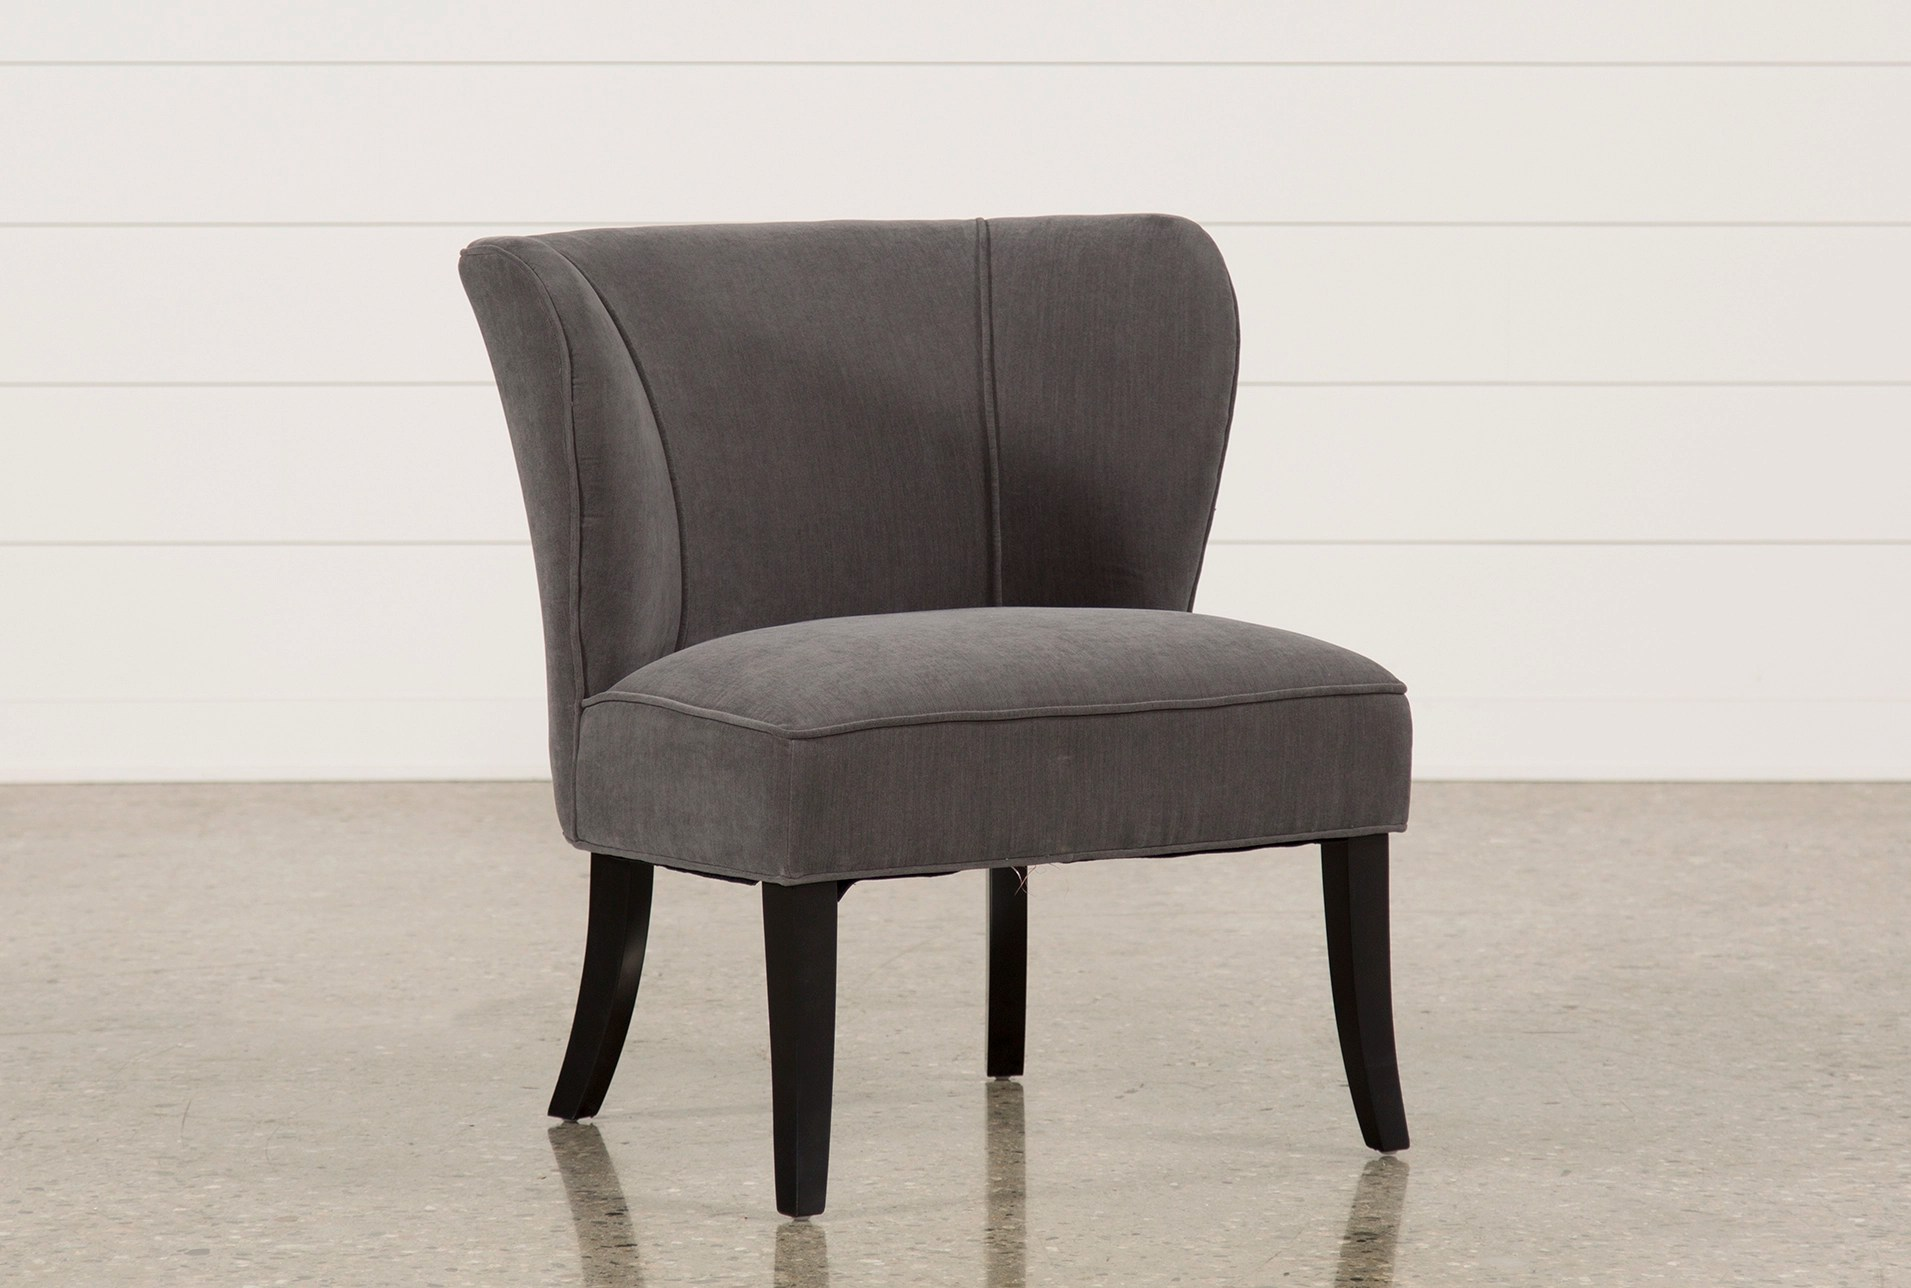 transitional accent chairs cheap spandex chair covers for sale grey your home and office living spaces riley